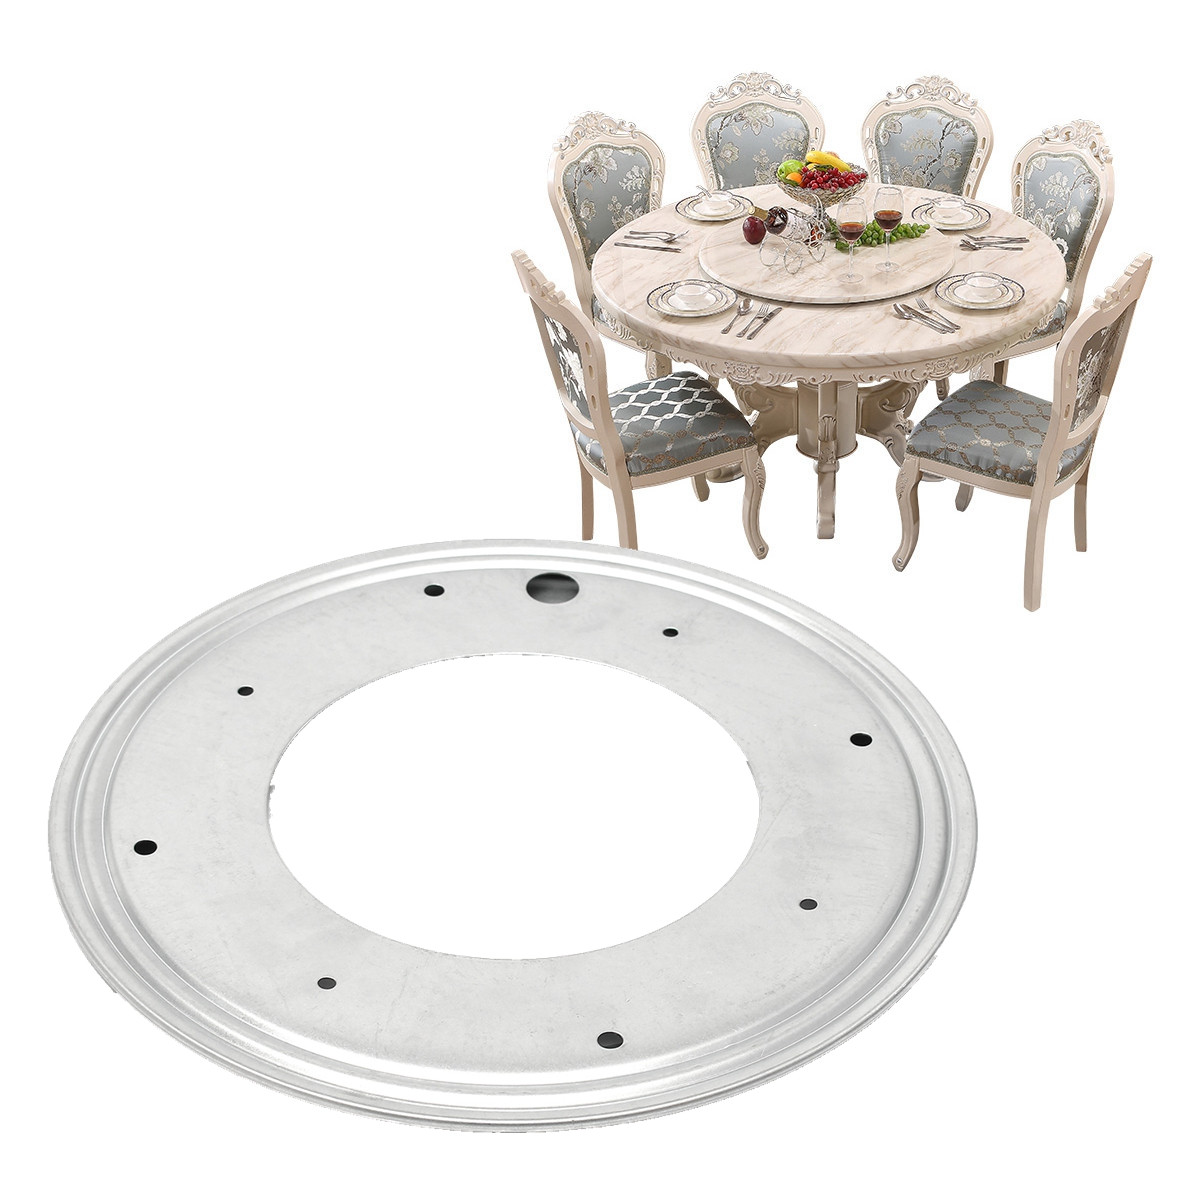 12 Inch Heavy Duty Bearing 300mm Table Furniture Turntable Ball Bearing Turntable Plate Round Galvanized Steel Smooth Rotating